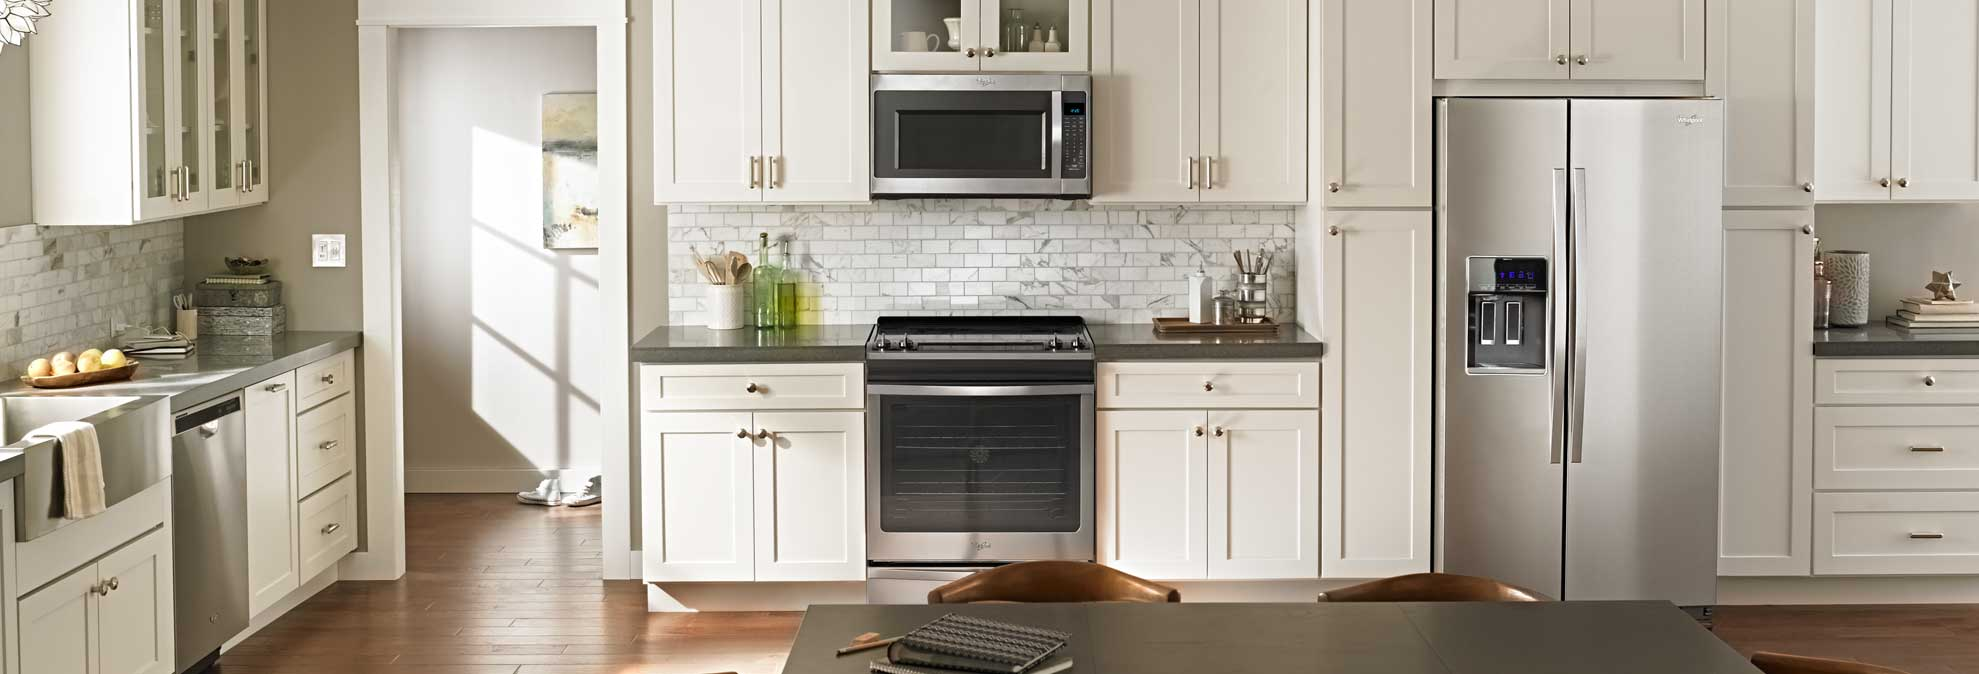 A Mid Range Kitchen Makeover For 25K To 50K Consumer Reports